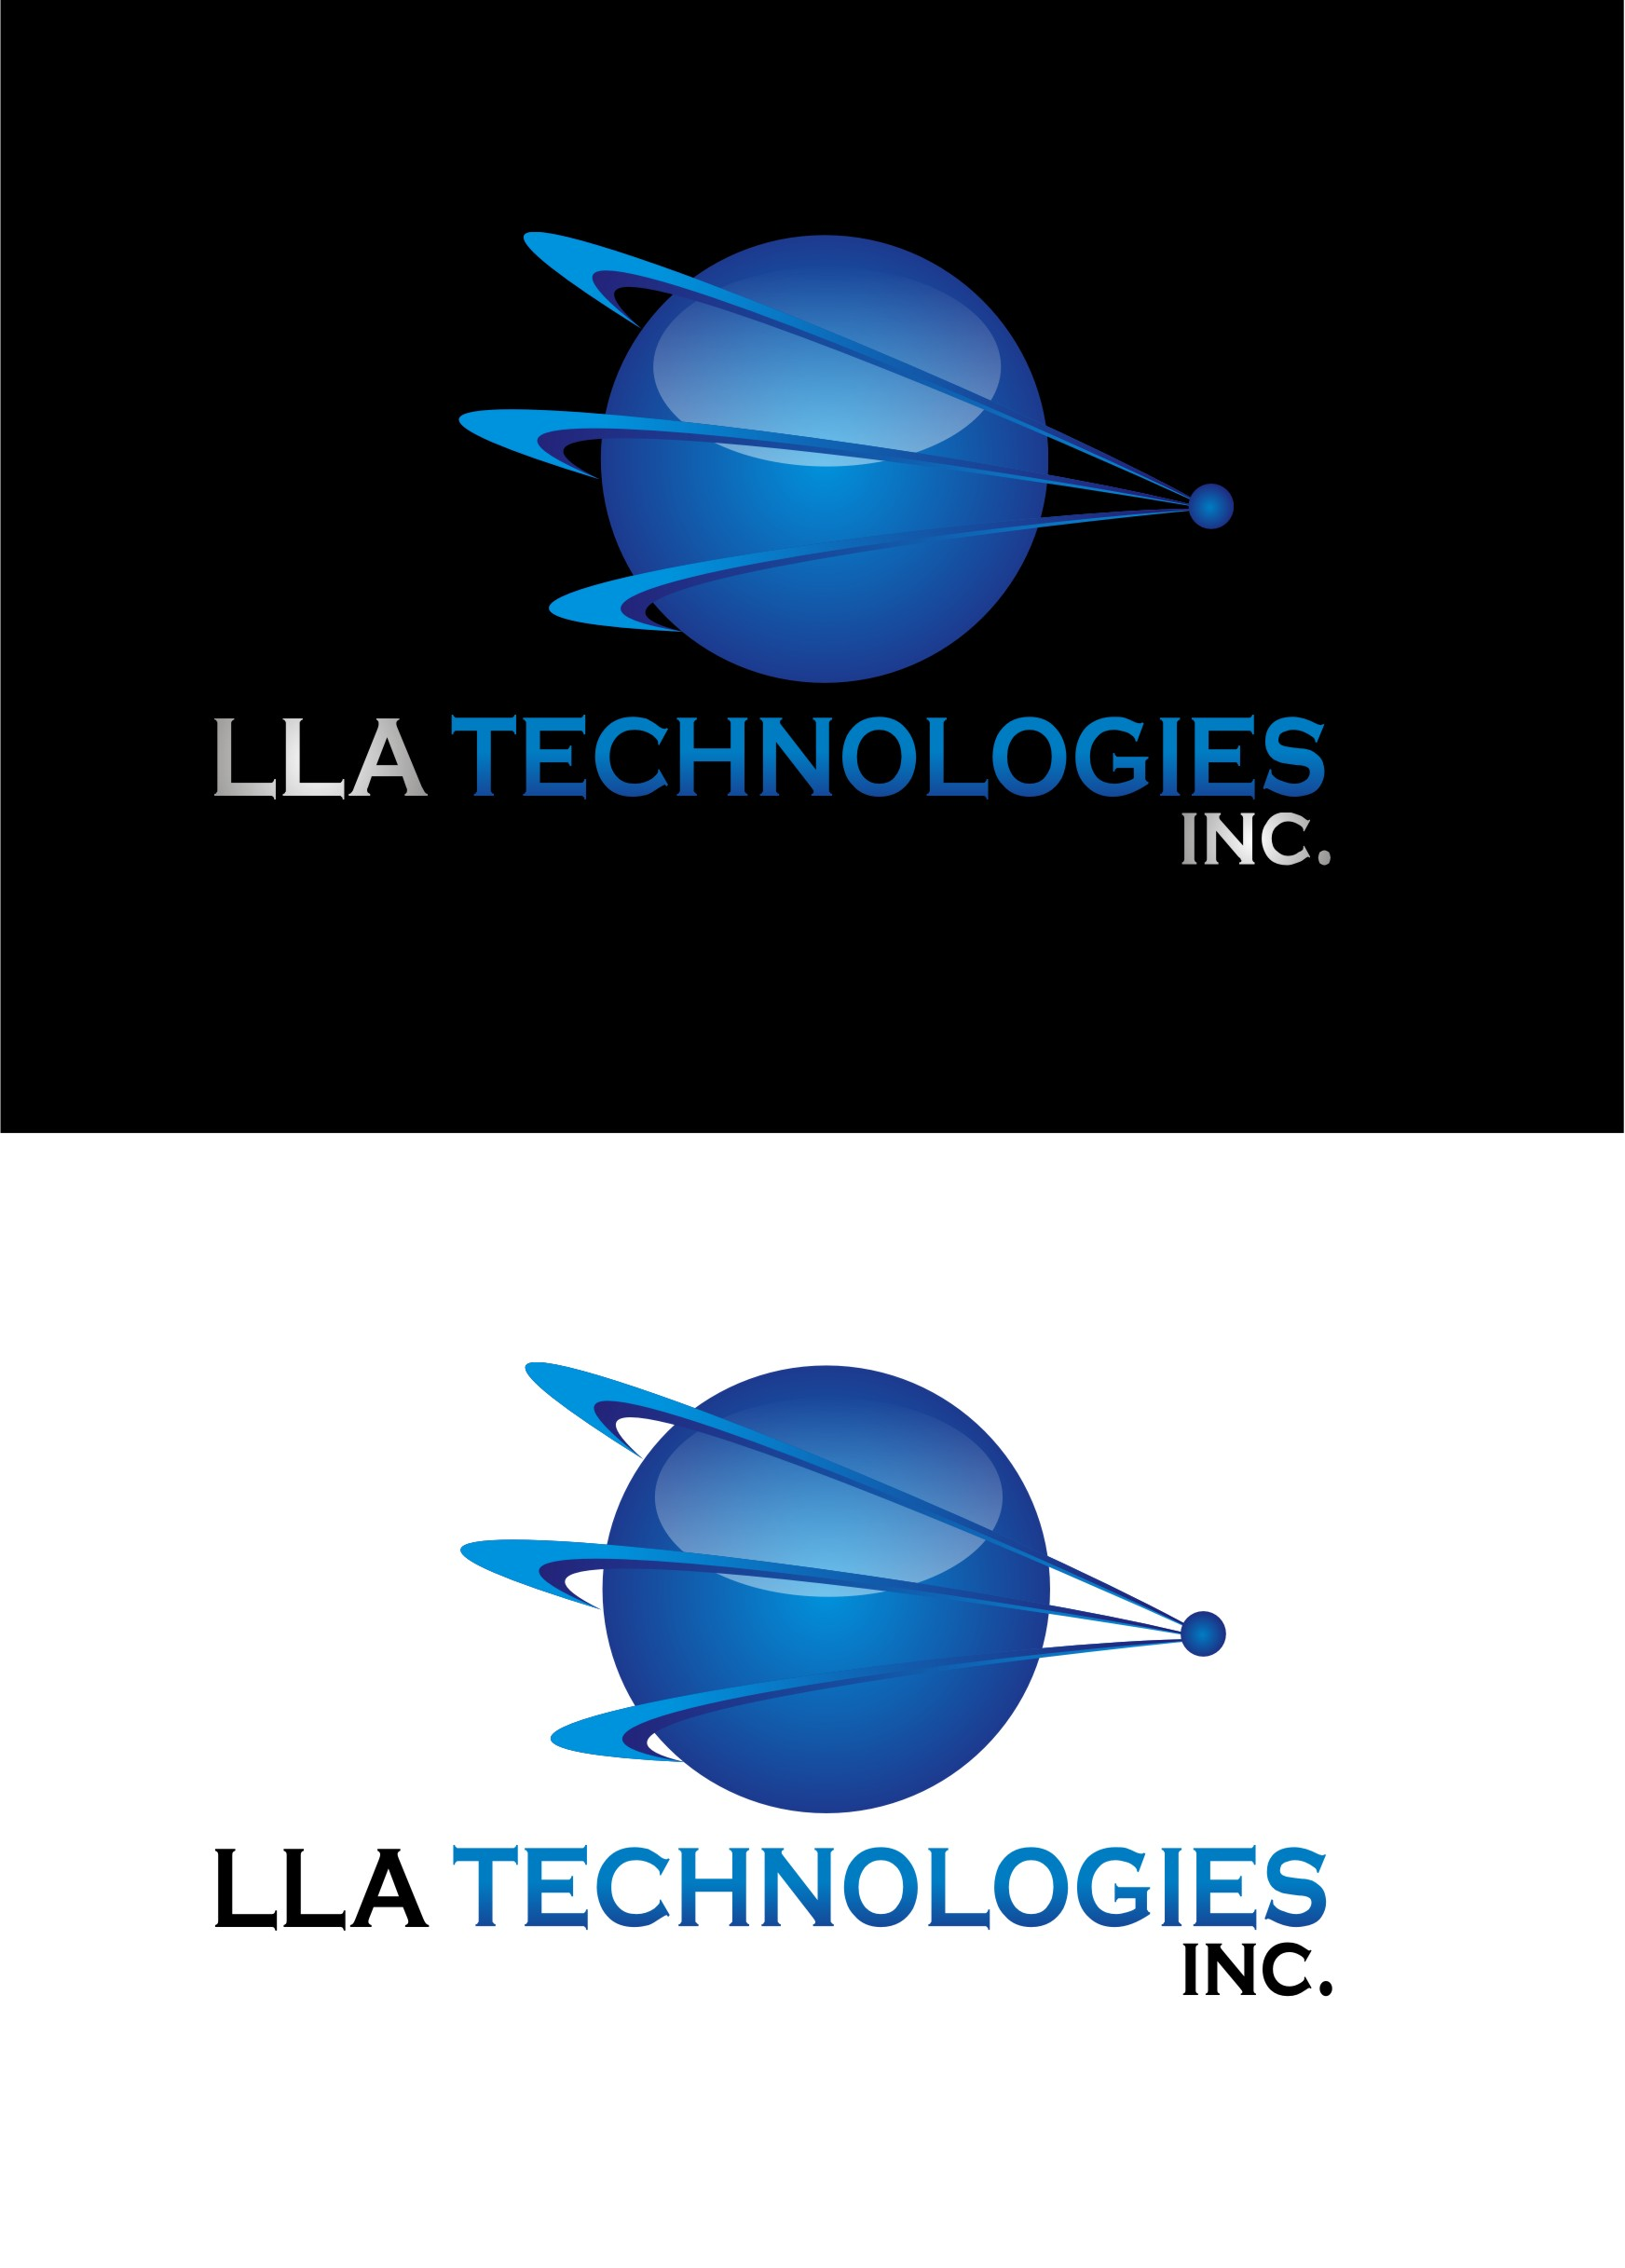 Logo Design by Yuda Hermawan - Entry No. 168 in the Logo Design Contest Inspiring Logo Design for LLA Technologies Inc..